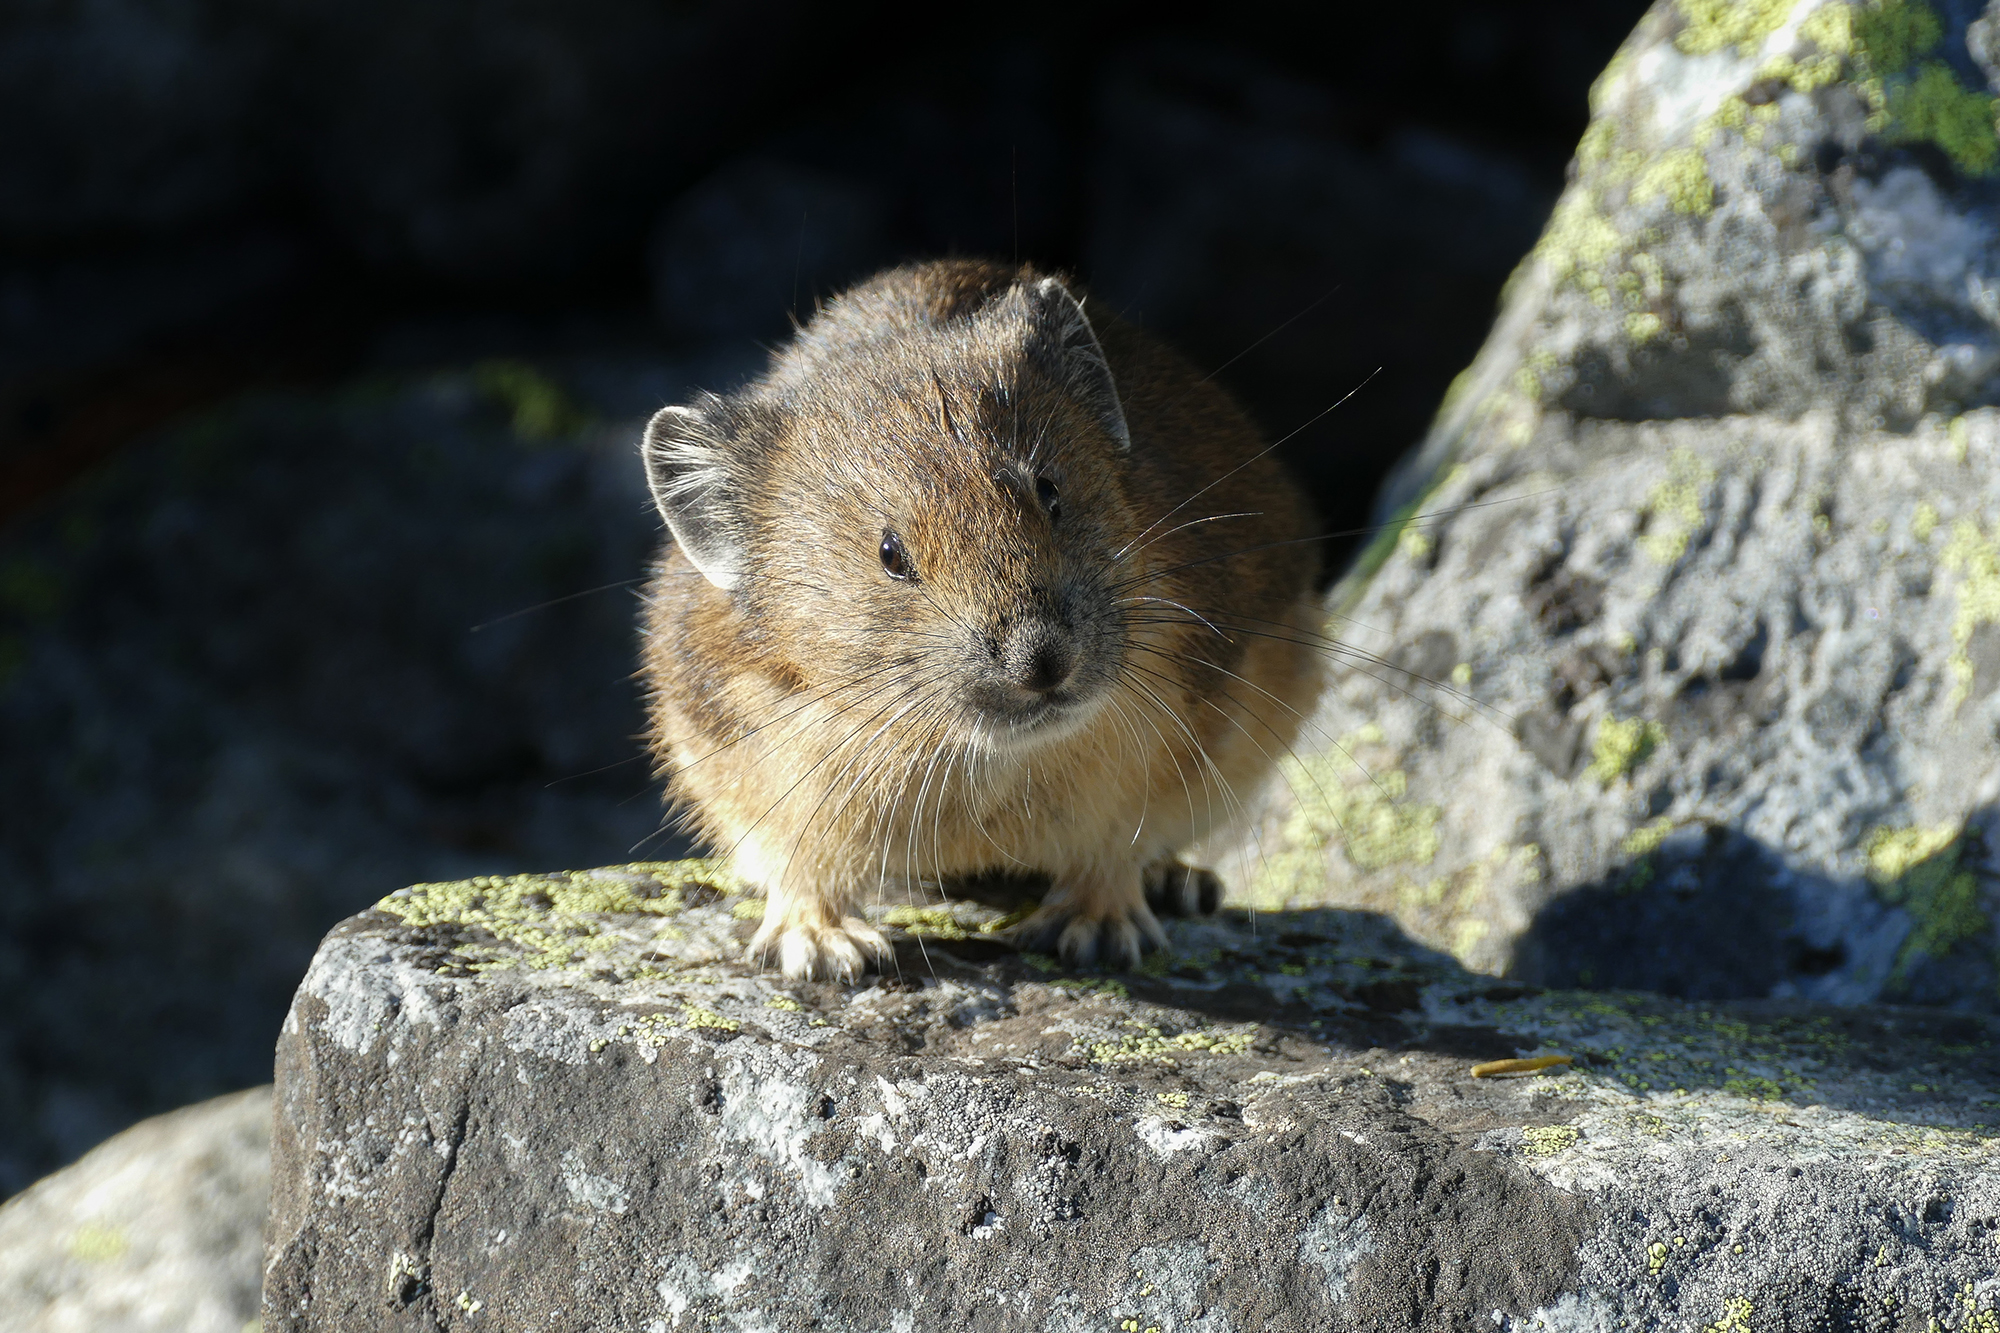 Protecting the Pikas